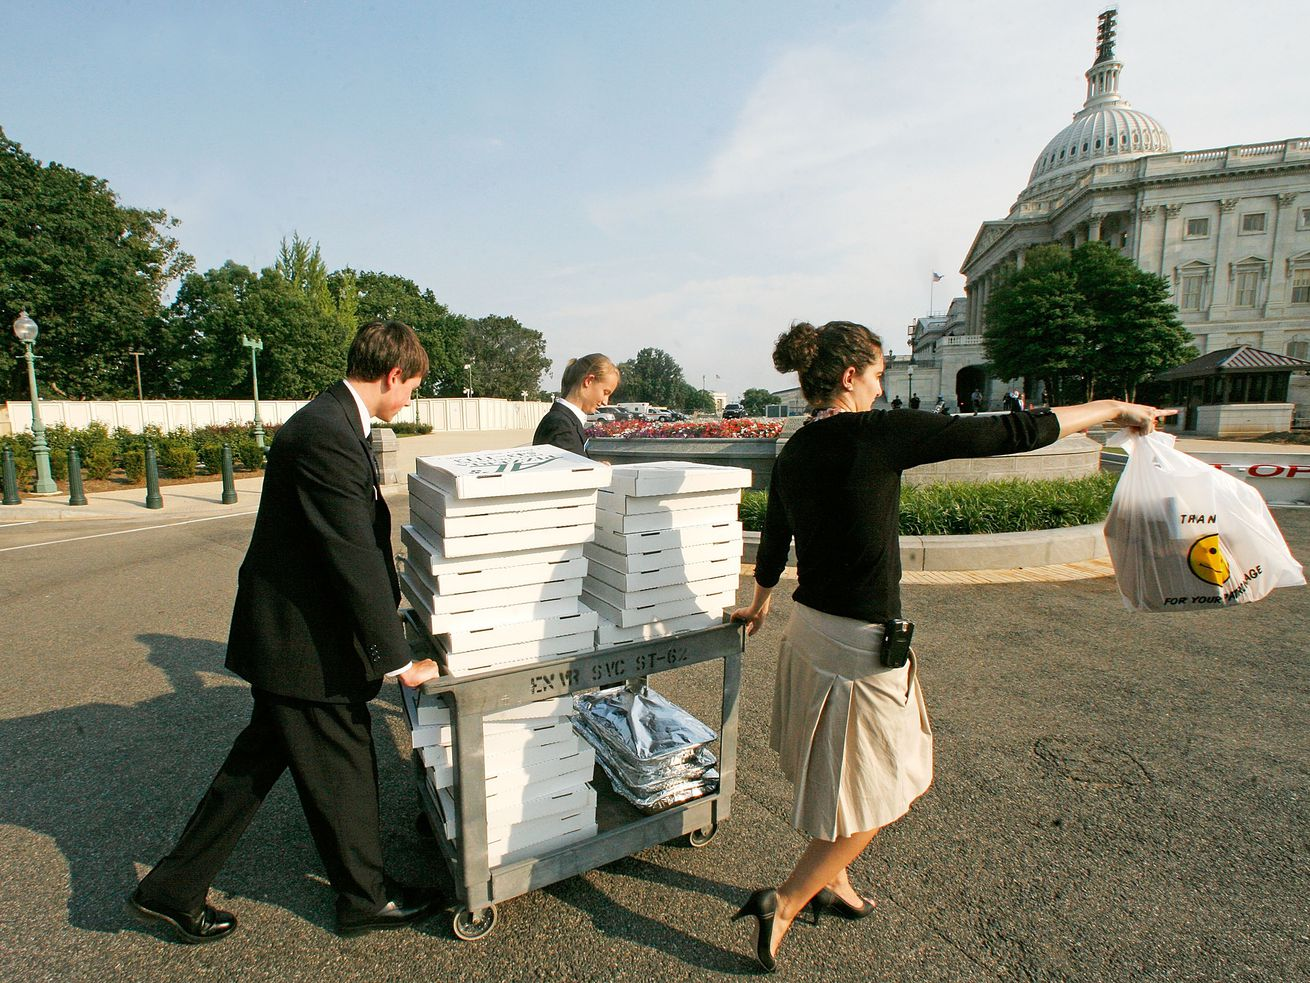 As it is now, most congressional interns don't get any pay.